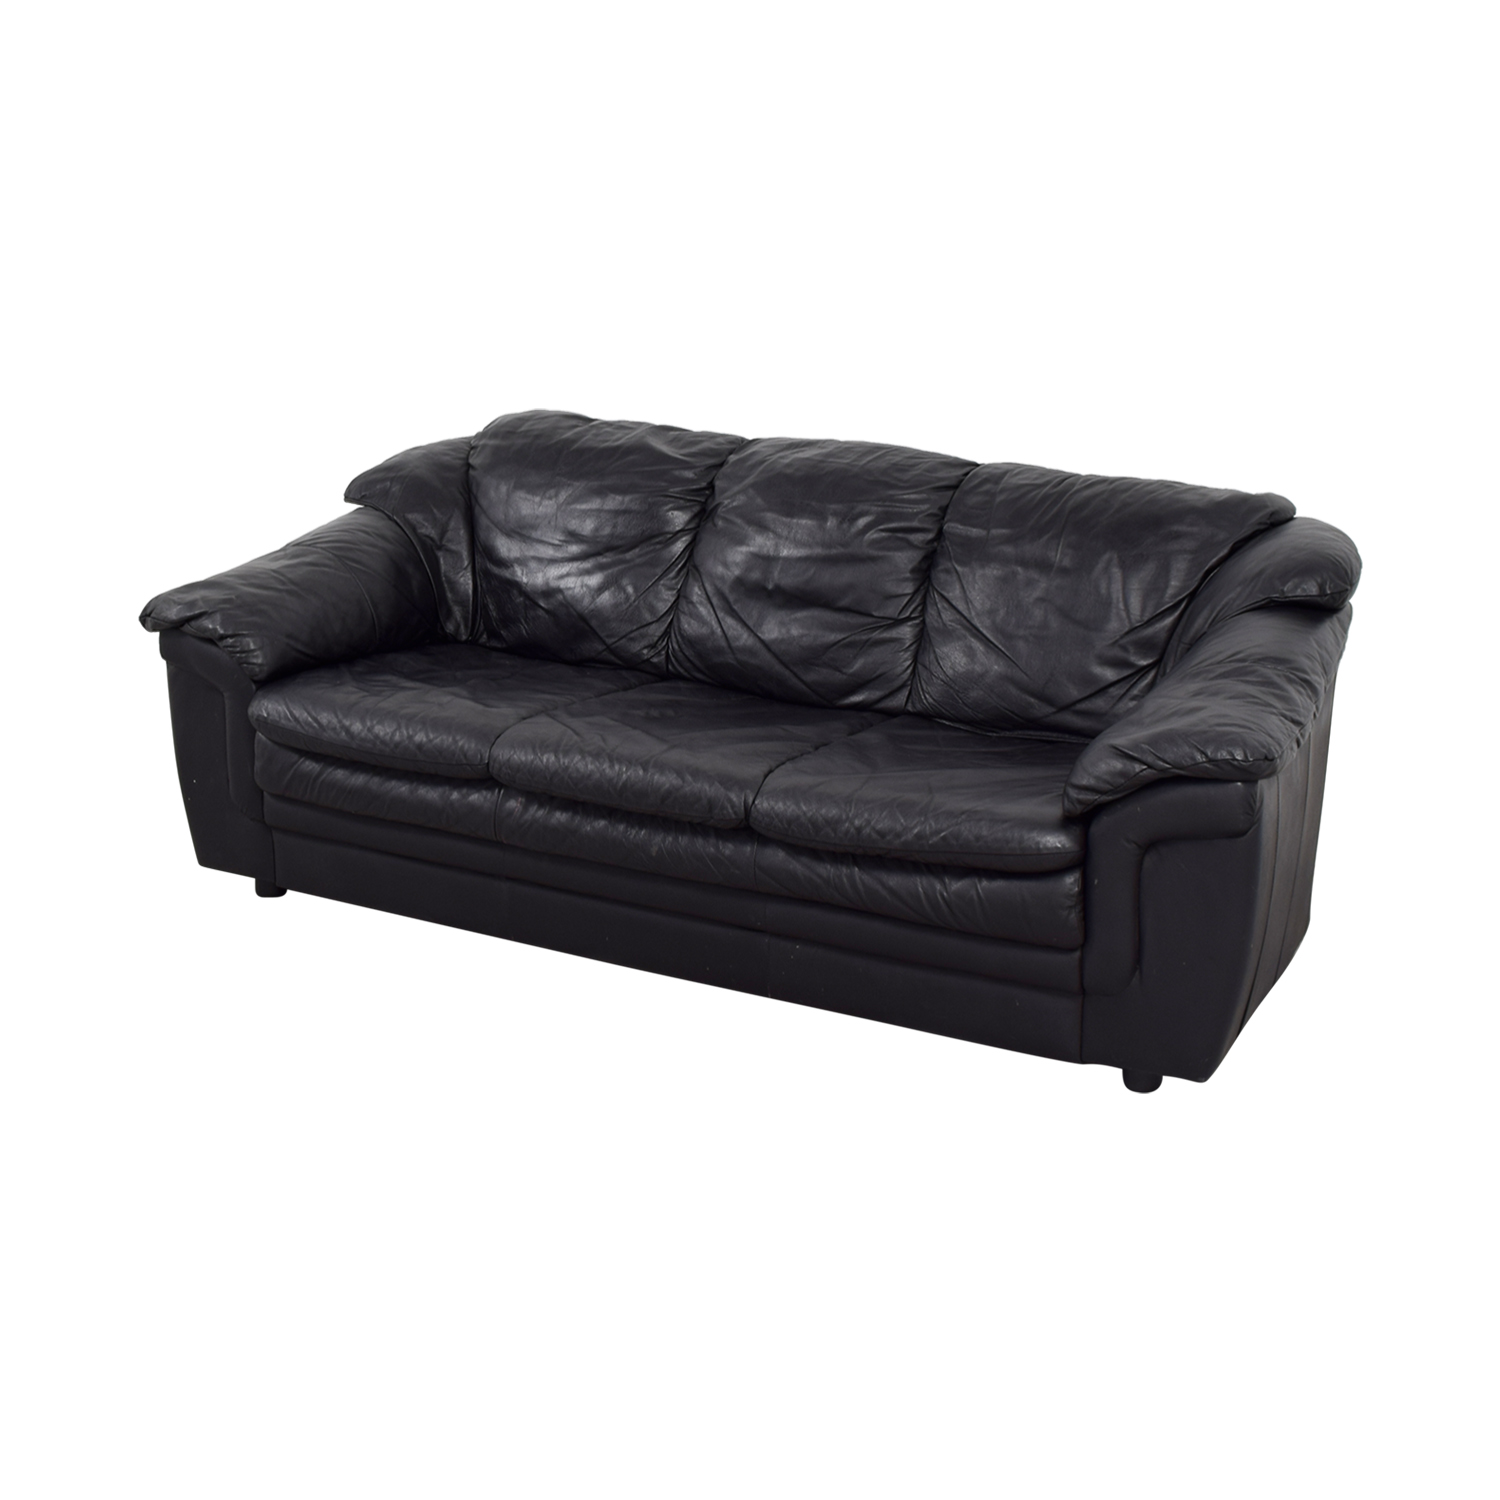 77% OFF - Jennifer Furniture Jennifer Leather Black Italian Leather Sofa /  Sofas